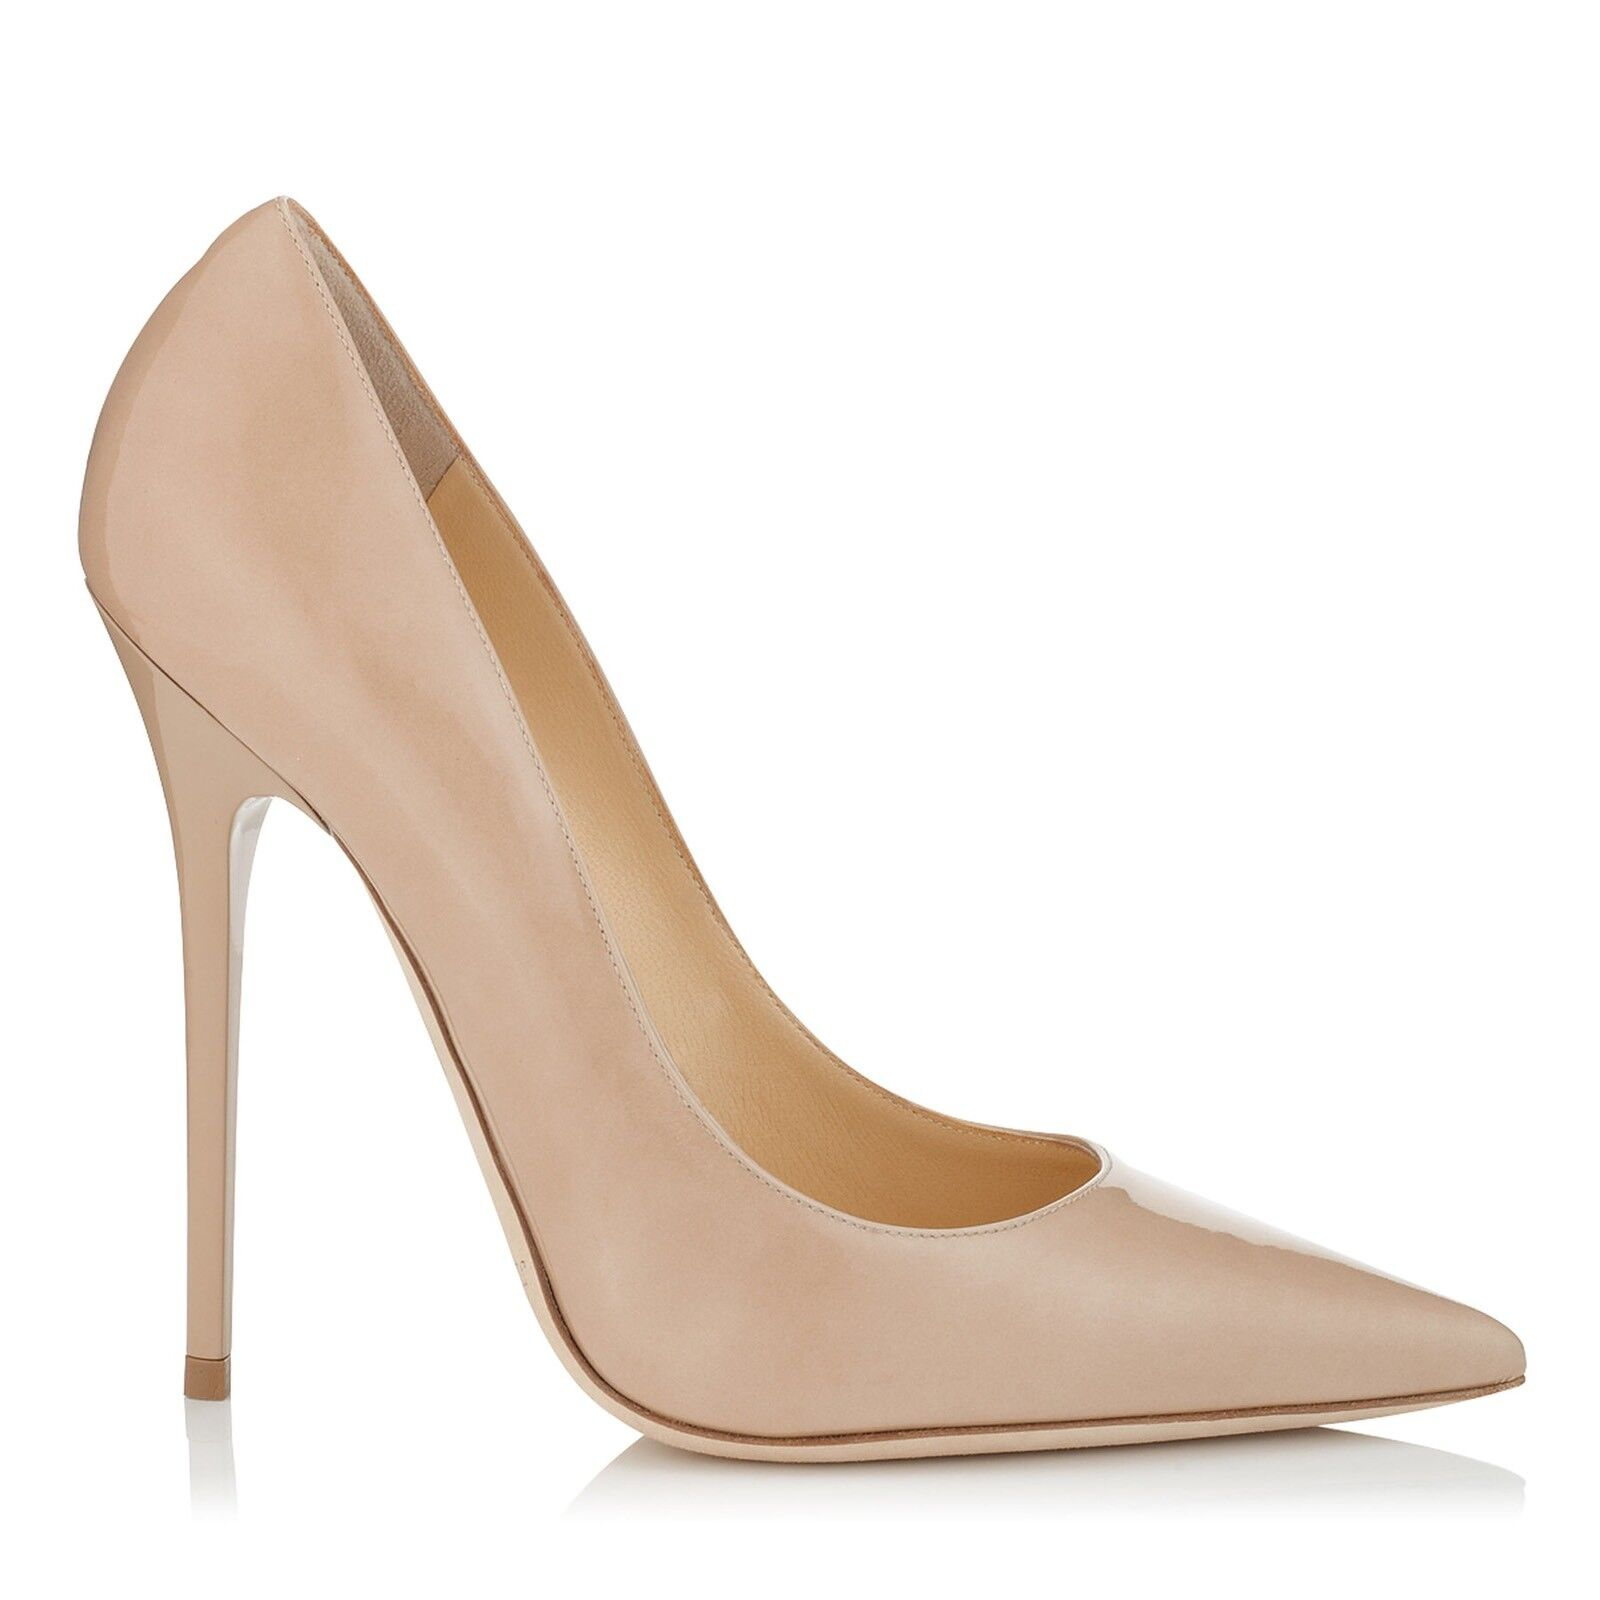 Jimmy Choo 'anouk' Nude Patent Court Heels Pumps Stiletto Größe Uk 7.5 Eu 40.5